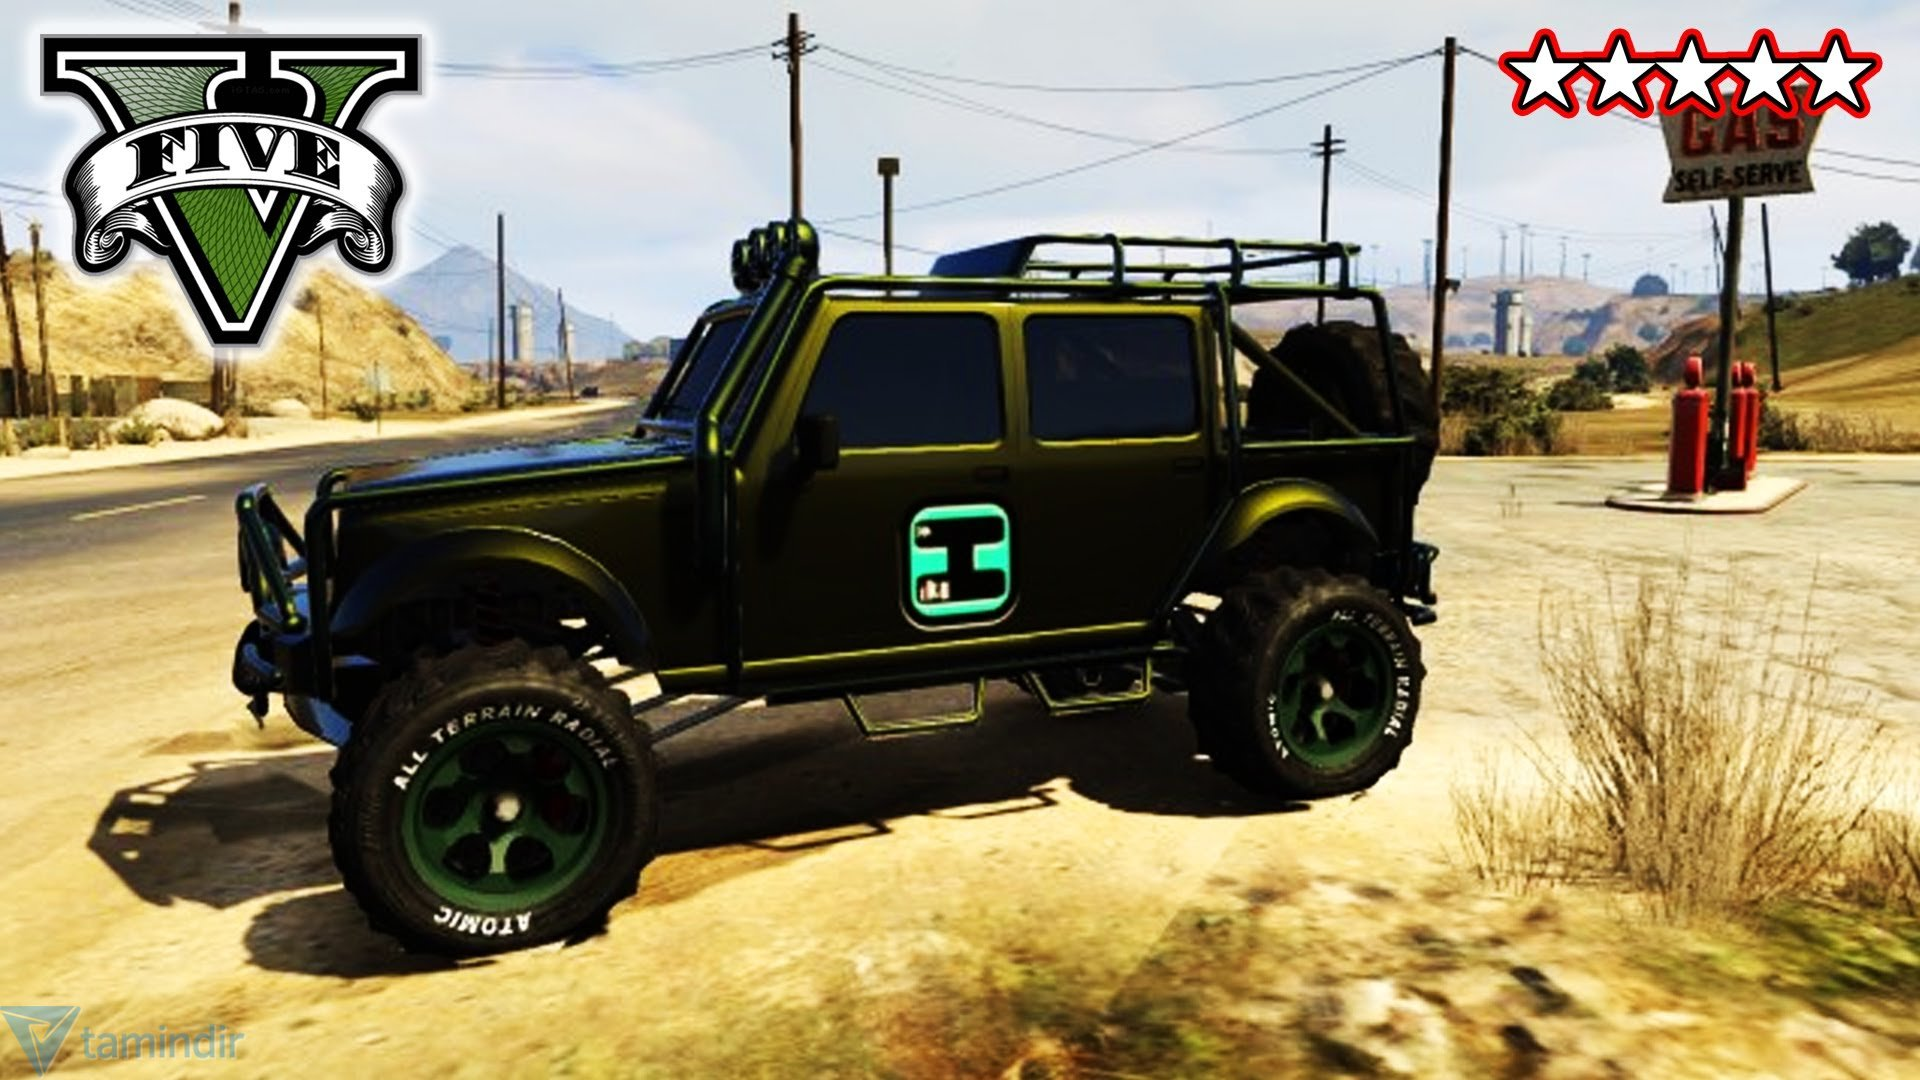 Watch additionally Watch further A Review Of Hotline Miami likewise Details furthermore 240363 New Wheels Installed Grand National 19 Modulare M15 Gloss Black. on best car gta 5 location